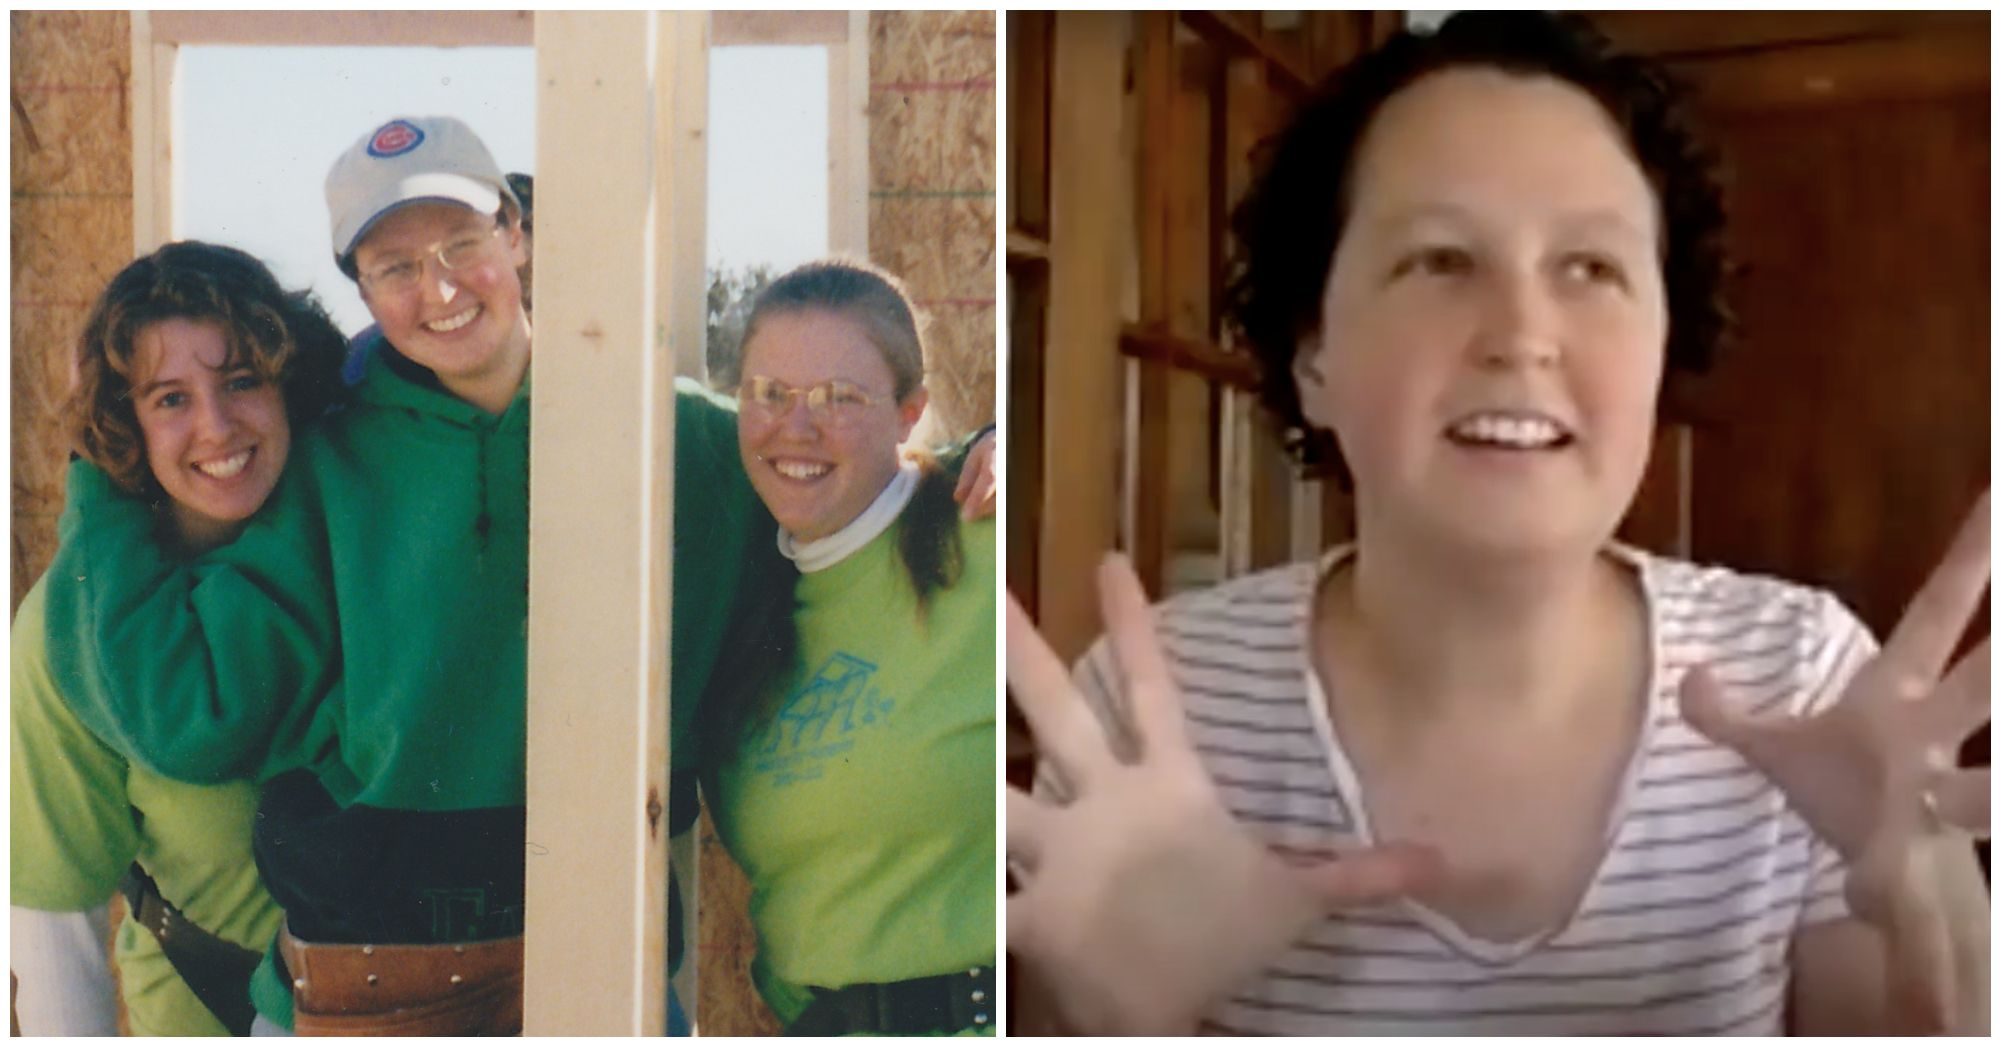 Twin Cities Habitat homebuilding volunteer Dawn Puroway on a homebuild site in 2002 and on a video interview in 2021